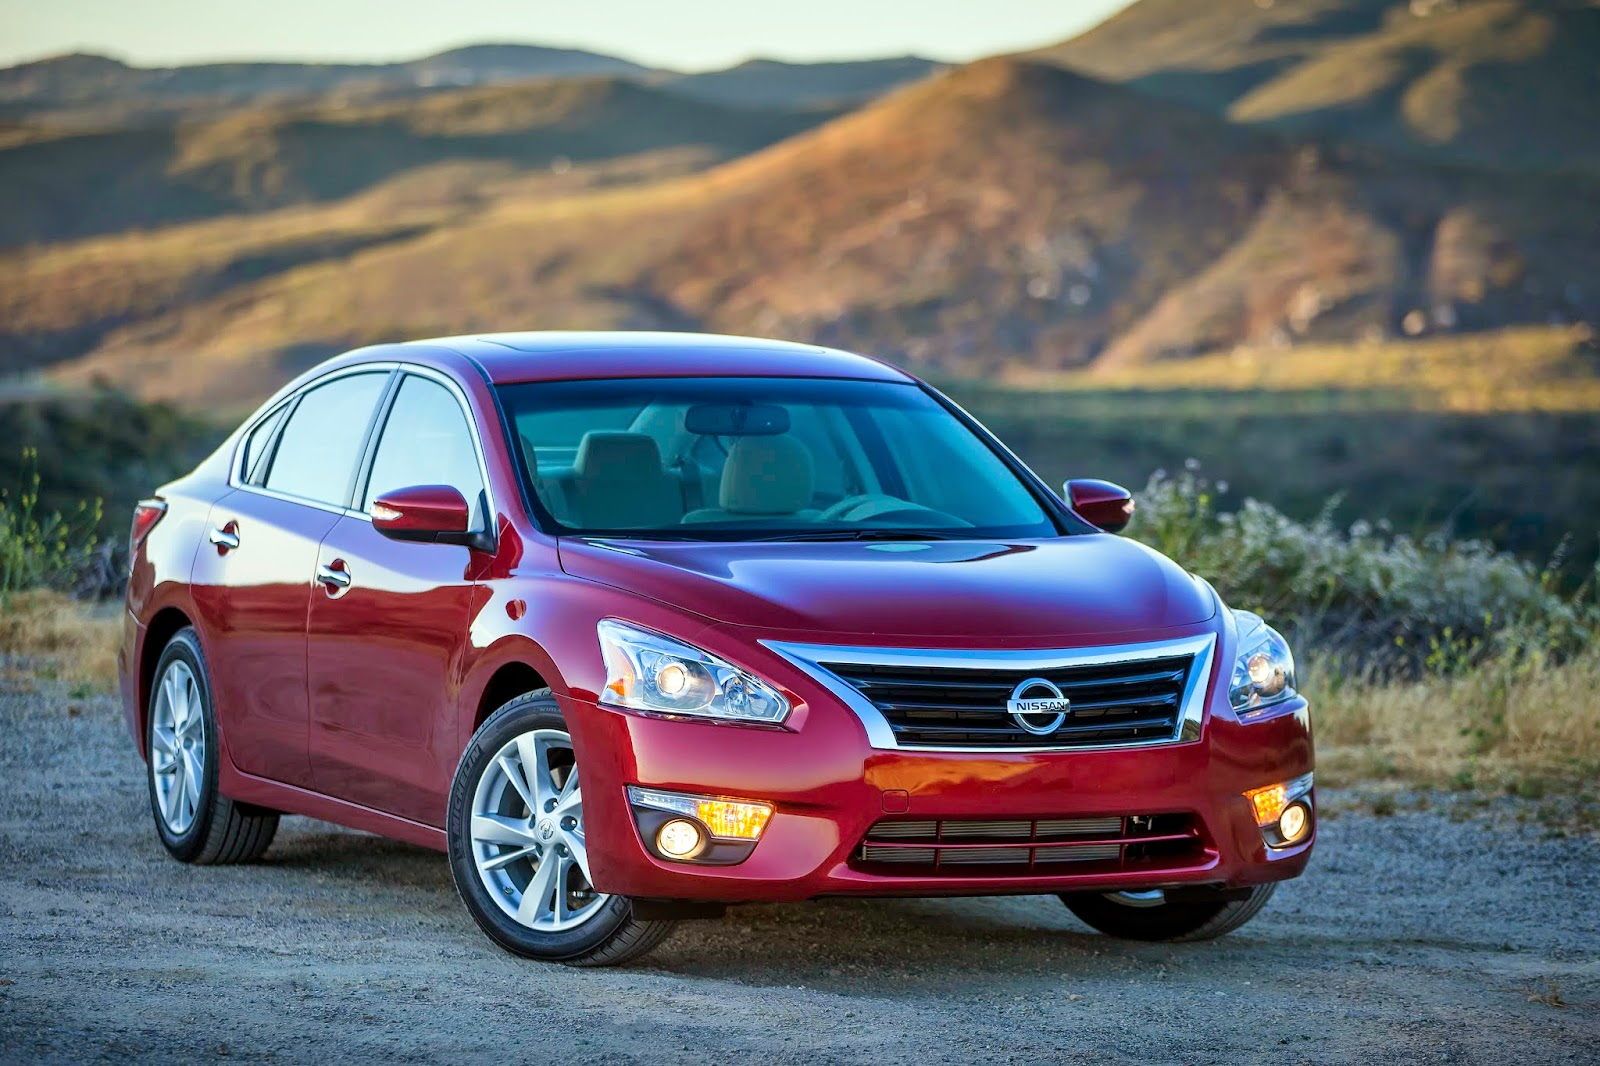 All the pluses add up in Nissan's Altima